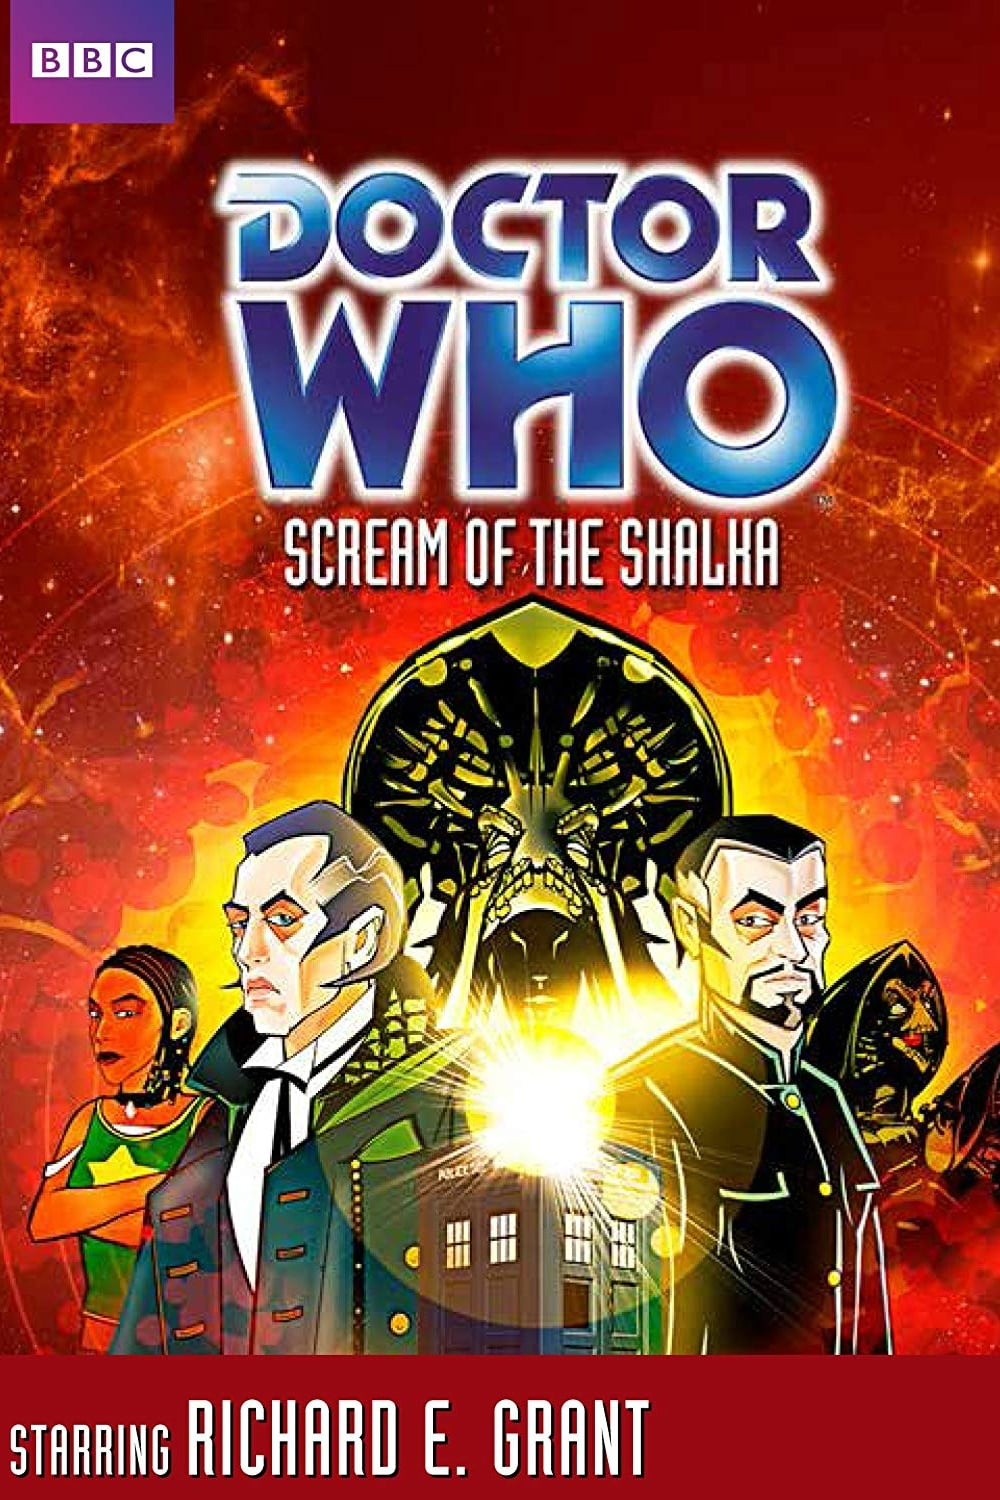 Doctor Who: Scream of the Shalka (2003)